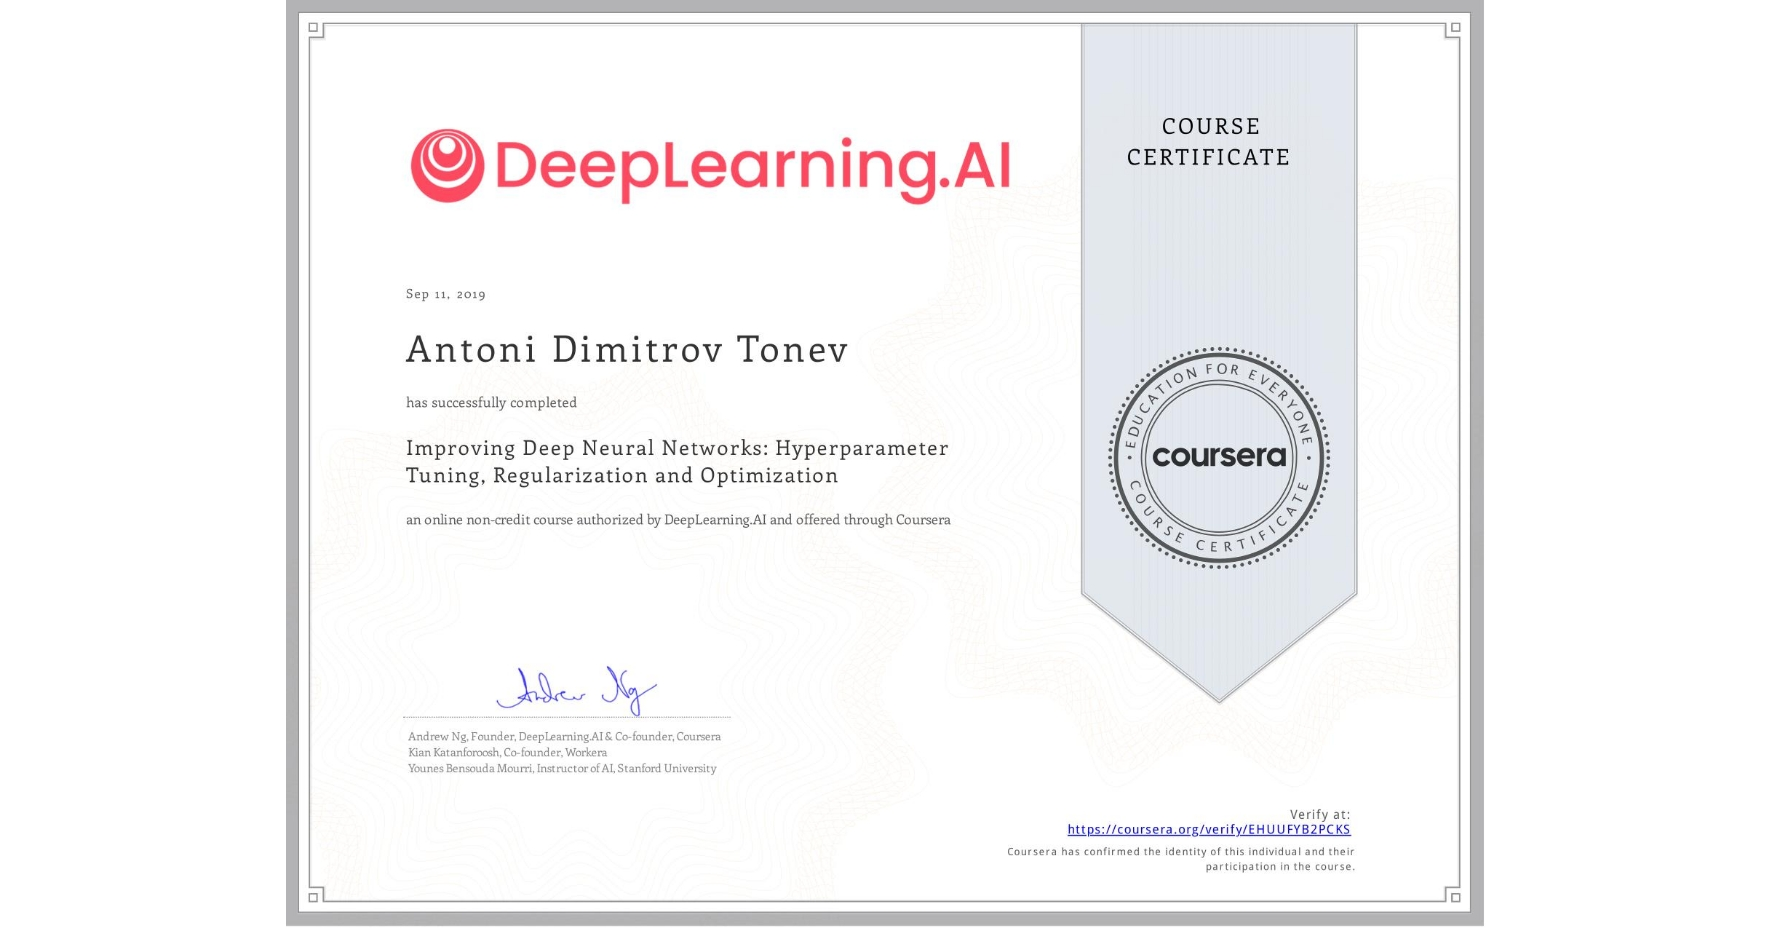 View certificate for Antoni Dimitrov Tonev, Improving Deep Neural Networks: Hyperparameter tuning, Regularization and Optimization, an online non-credit course authorized by DeepLearning.AI and offered through Coursera